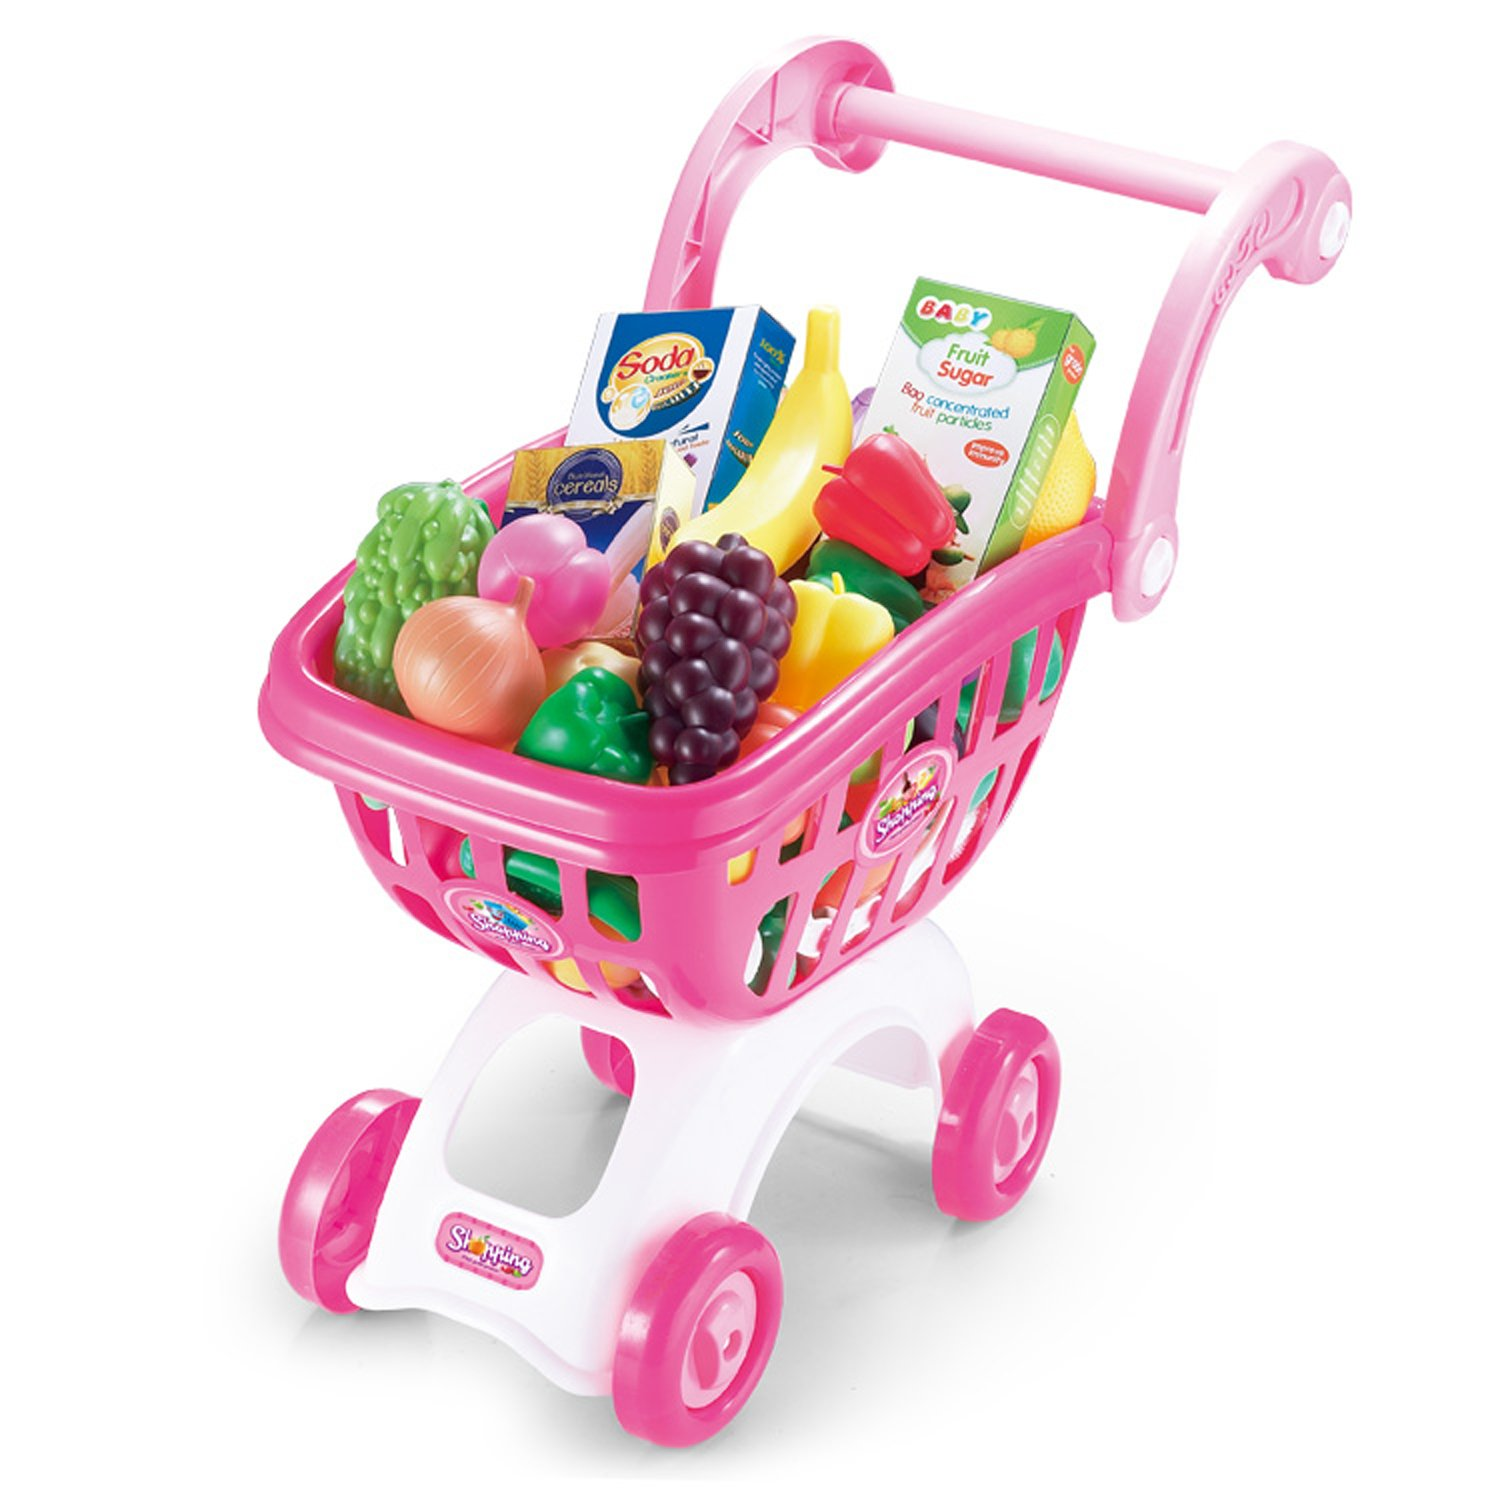 KISSKIDS 19' Large Plastic Shopping Cart with Accessories of Fruits, Vegetables, Drinks, Popular Pretend Toy for Children(Pink)